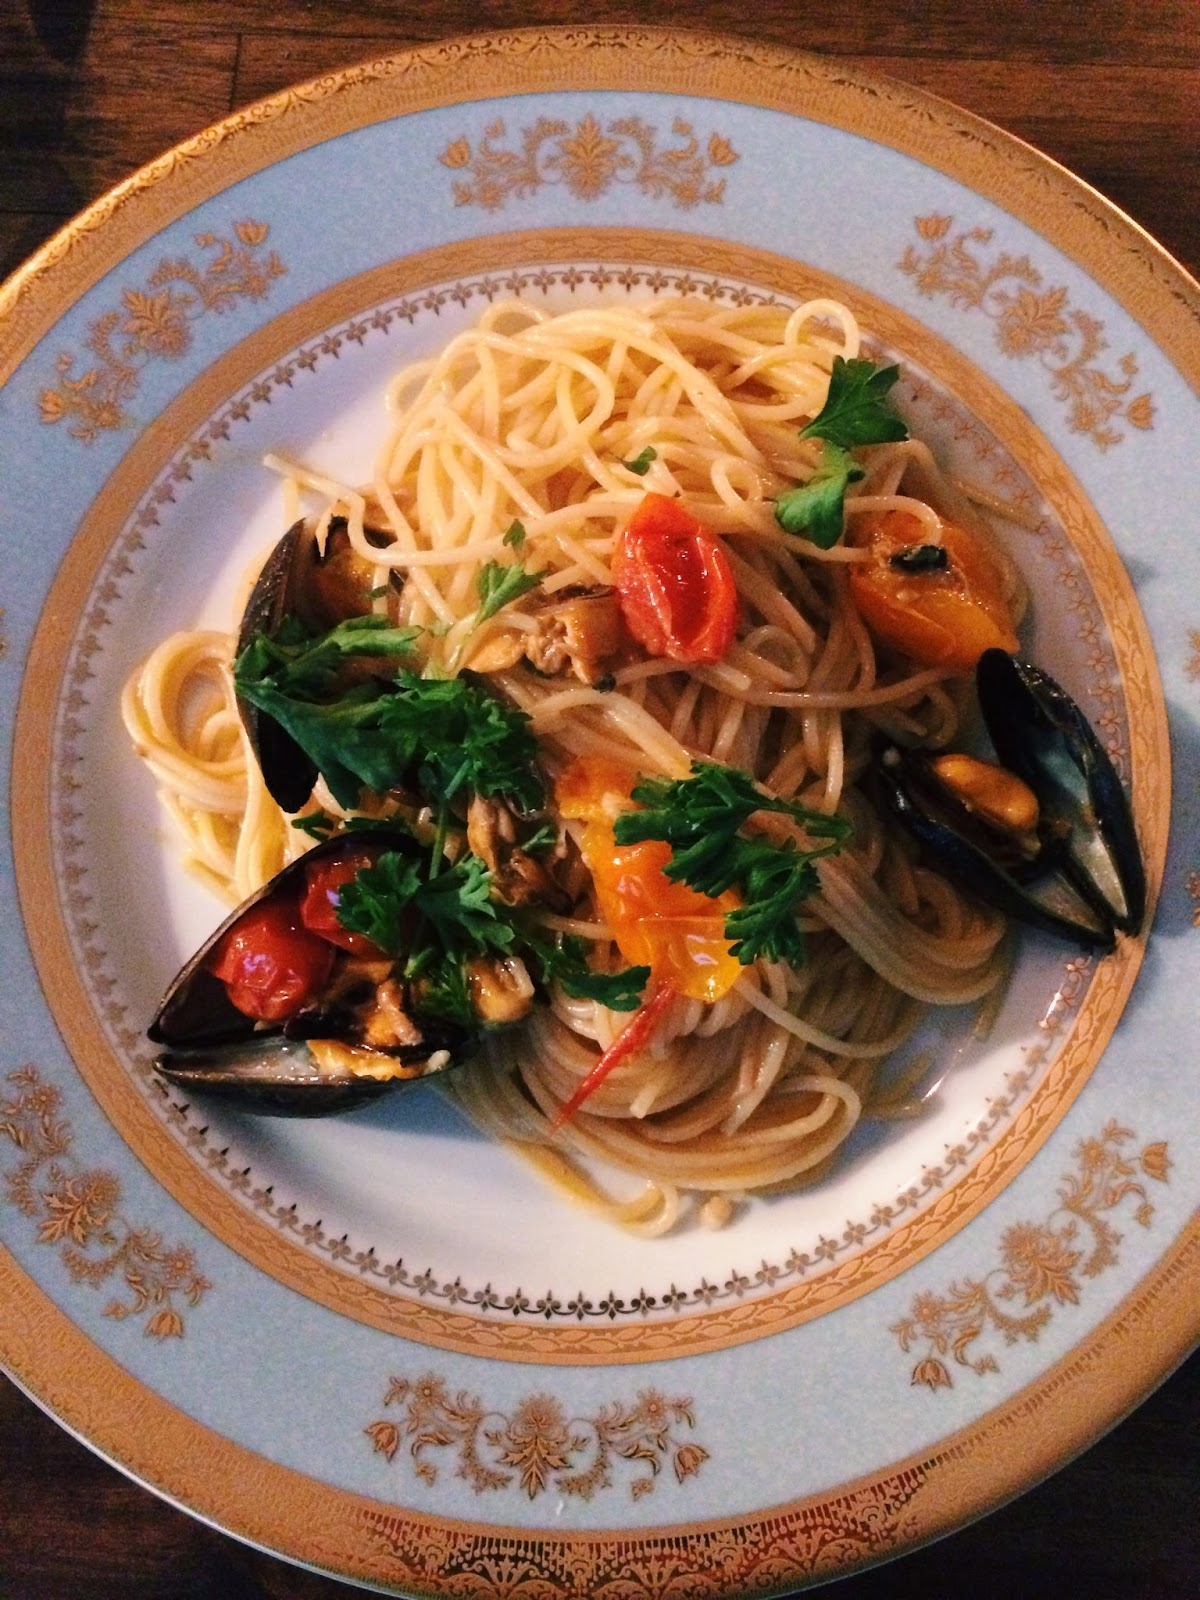 Italian Dinner, Trendy in Texas, Mussels, Pasta, Mussels and Pasta, Orsay Power Blue,  Orsay China